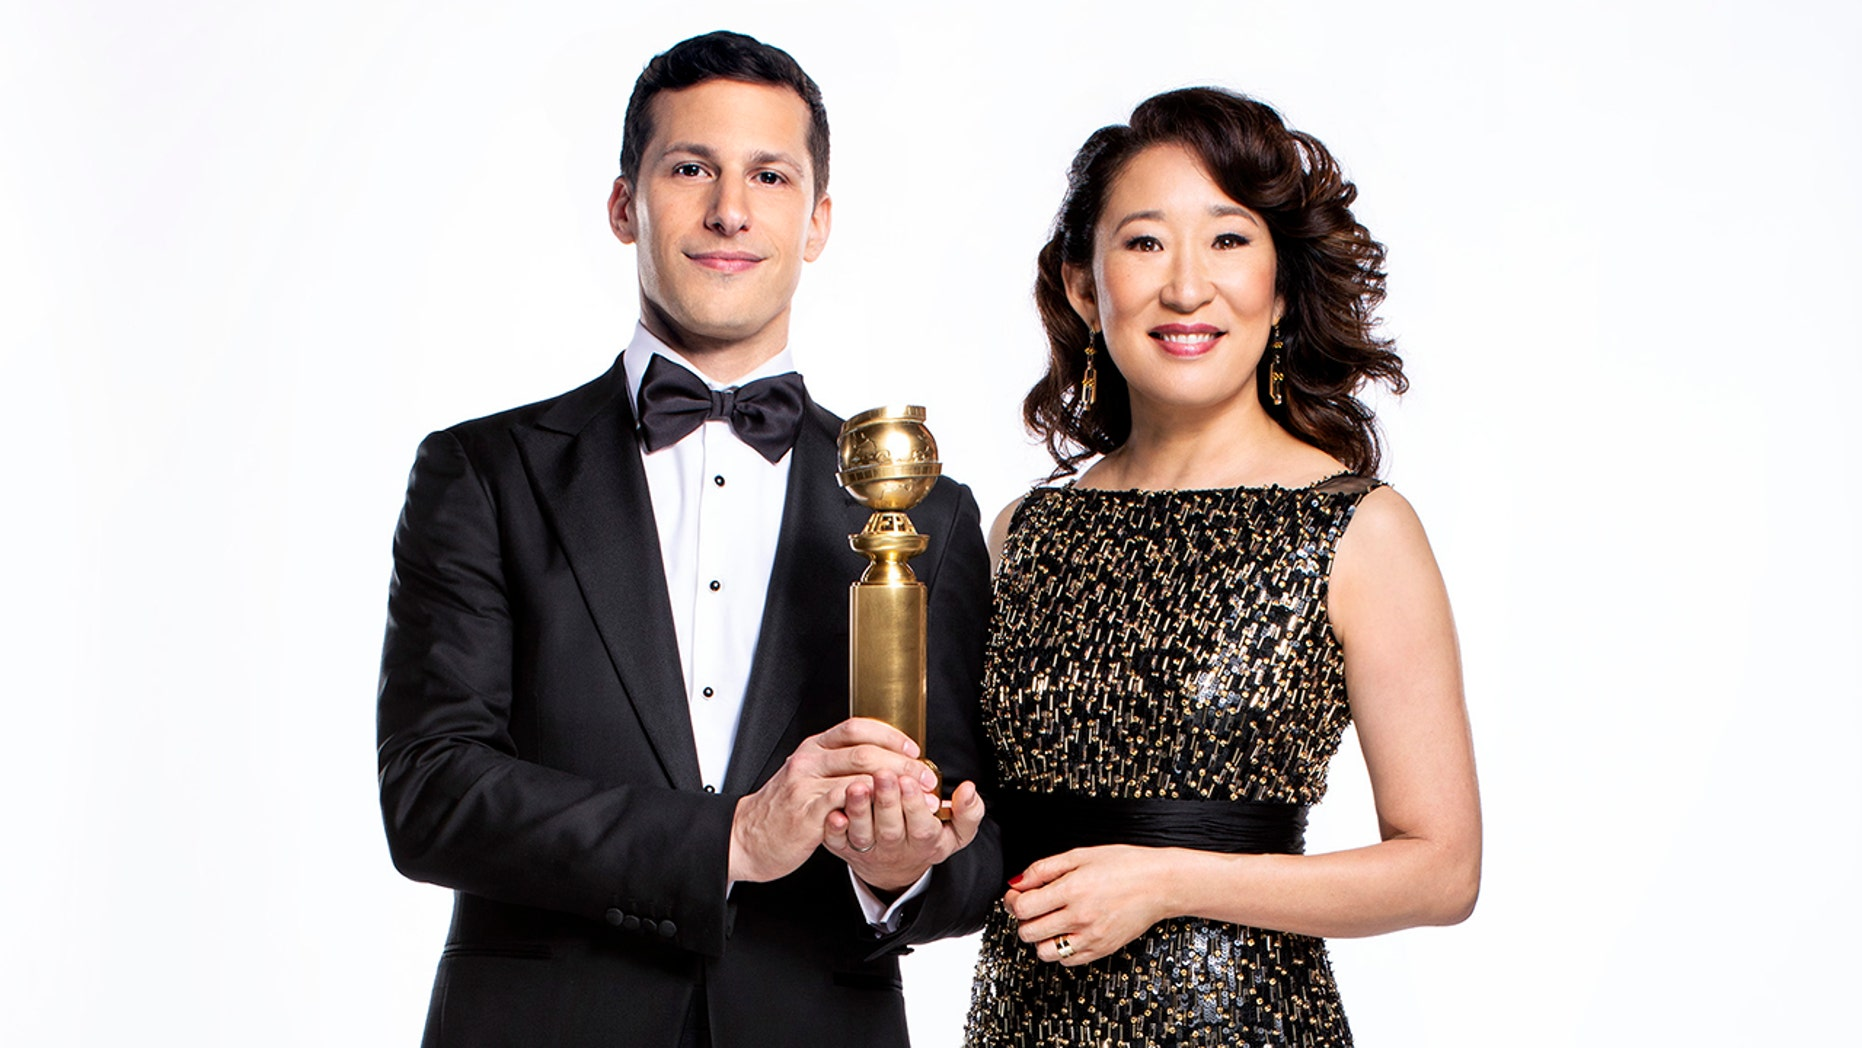 Golden Globes Hosts Andy Samberg & Sandra Oh Roll Out the Red Carpet!